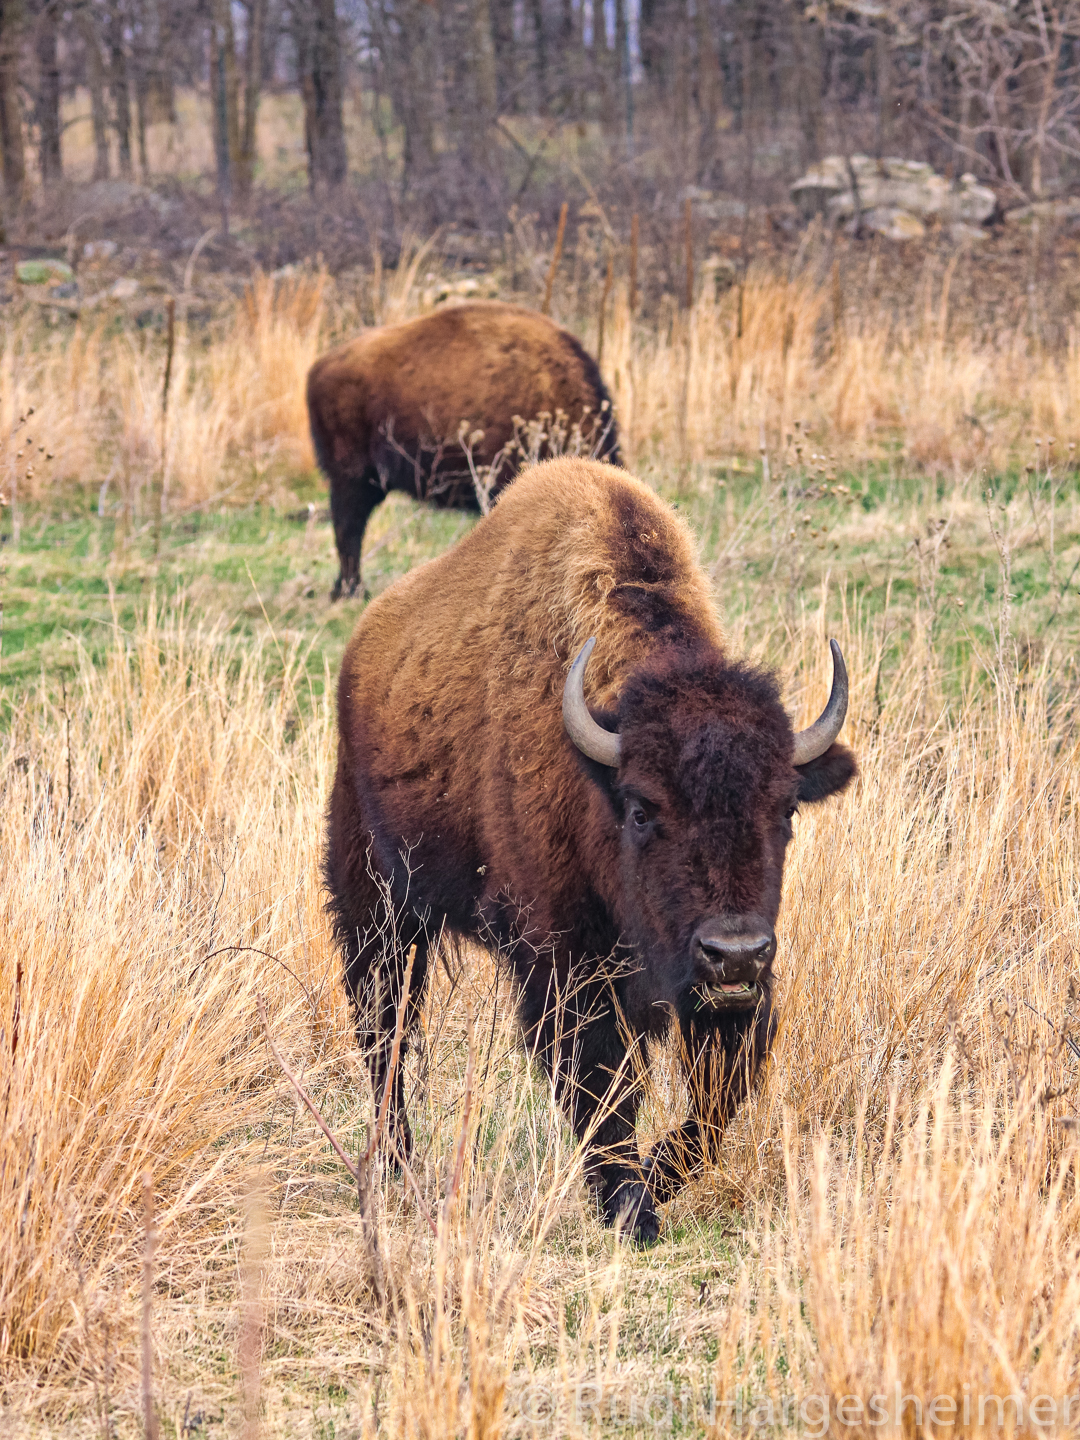 The goal is to eventually have a herd of about 40 bison here at Minneopa State Park